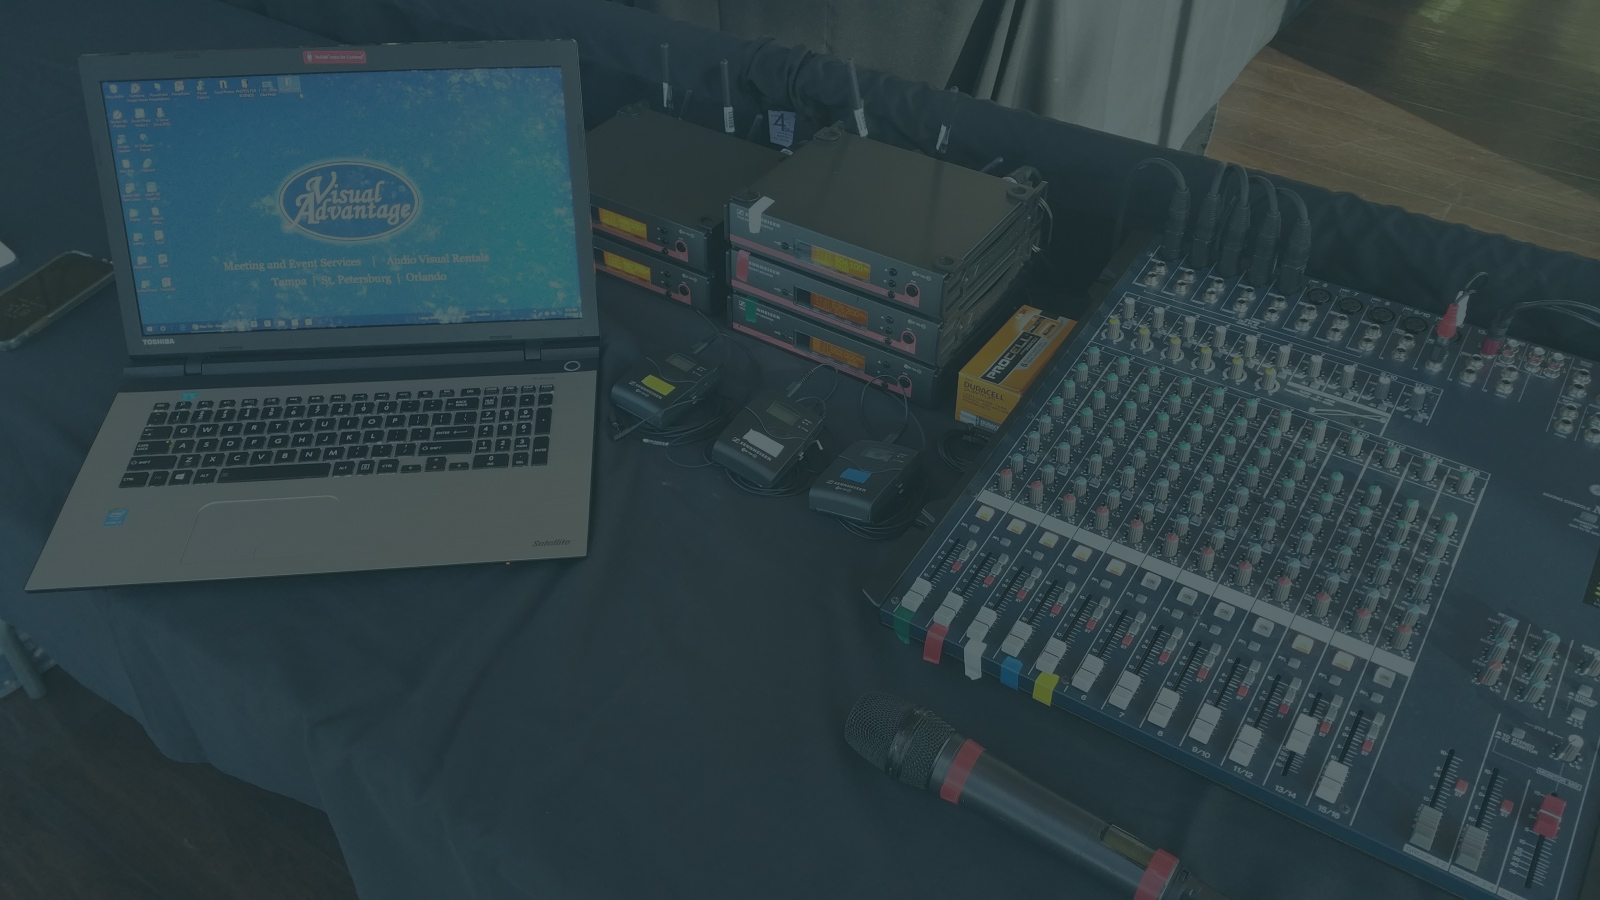 AUDIO VISUAL RENTALS - Visual Advantage provides audio, video and lighting rentals for meetings, conferences, seminars and corporate or personal events. Our equipment rentals are always updated and reliable.